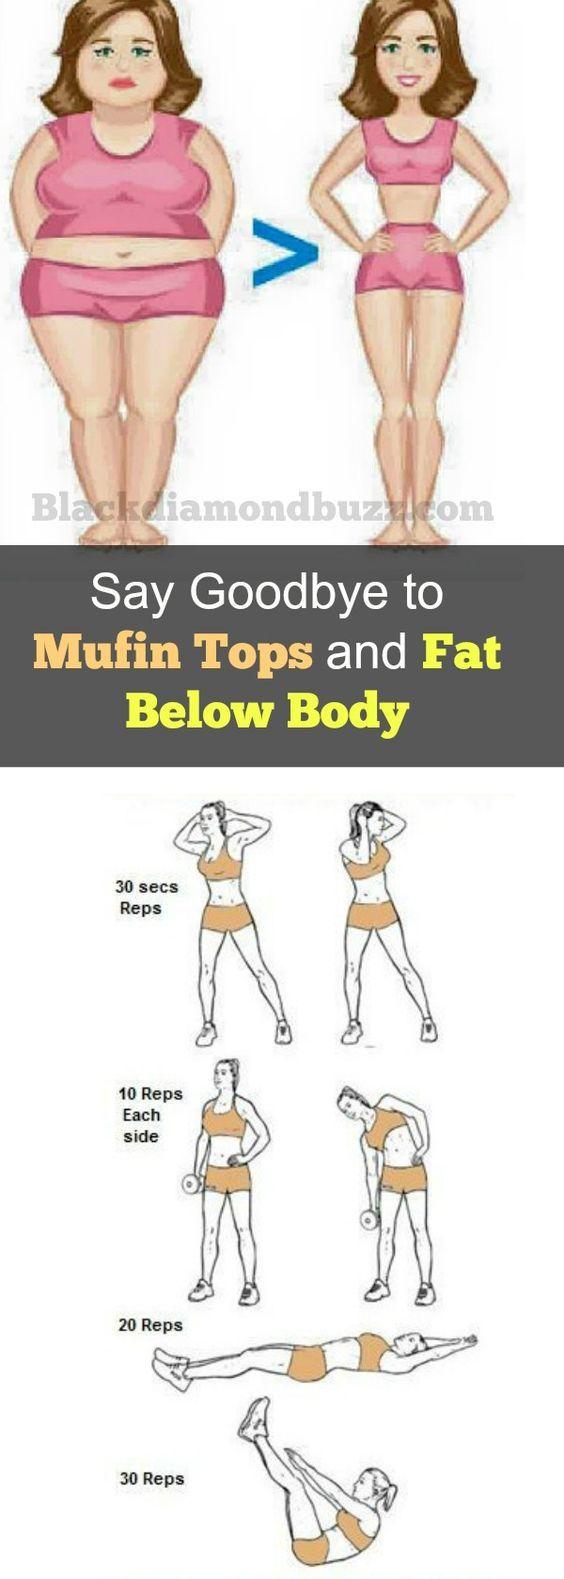 #Exercises to Lose Muffin top and Love handles | Muffin top before and after |muffin top causes and muffin top challenge.